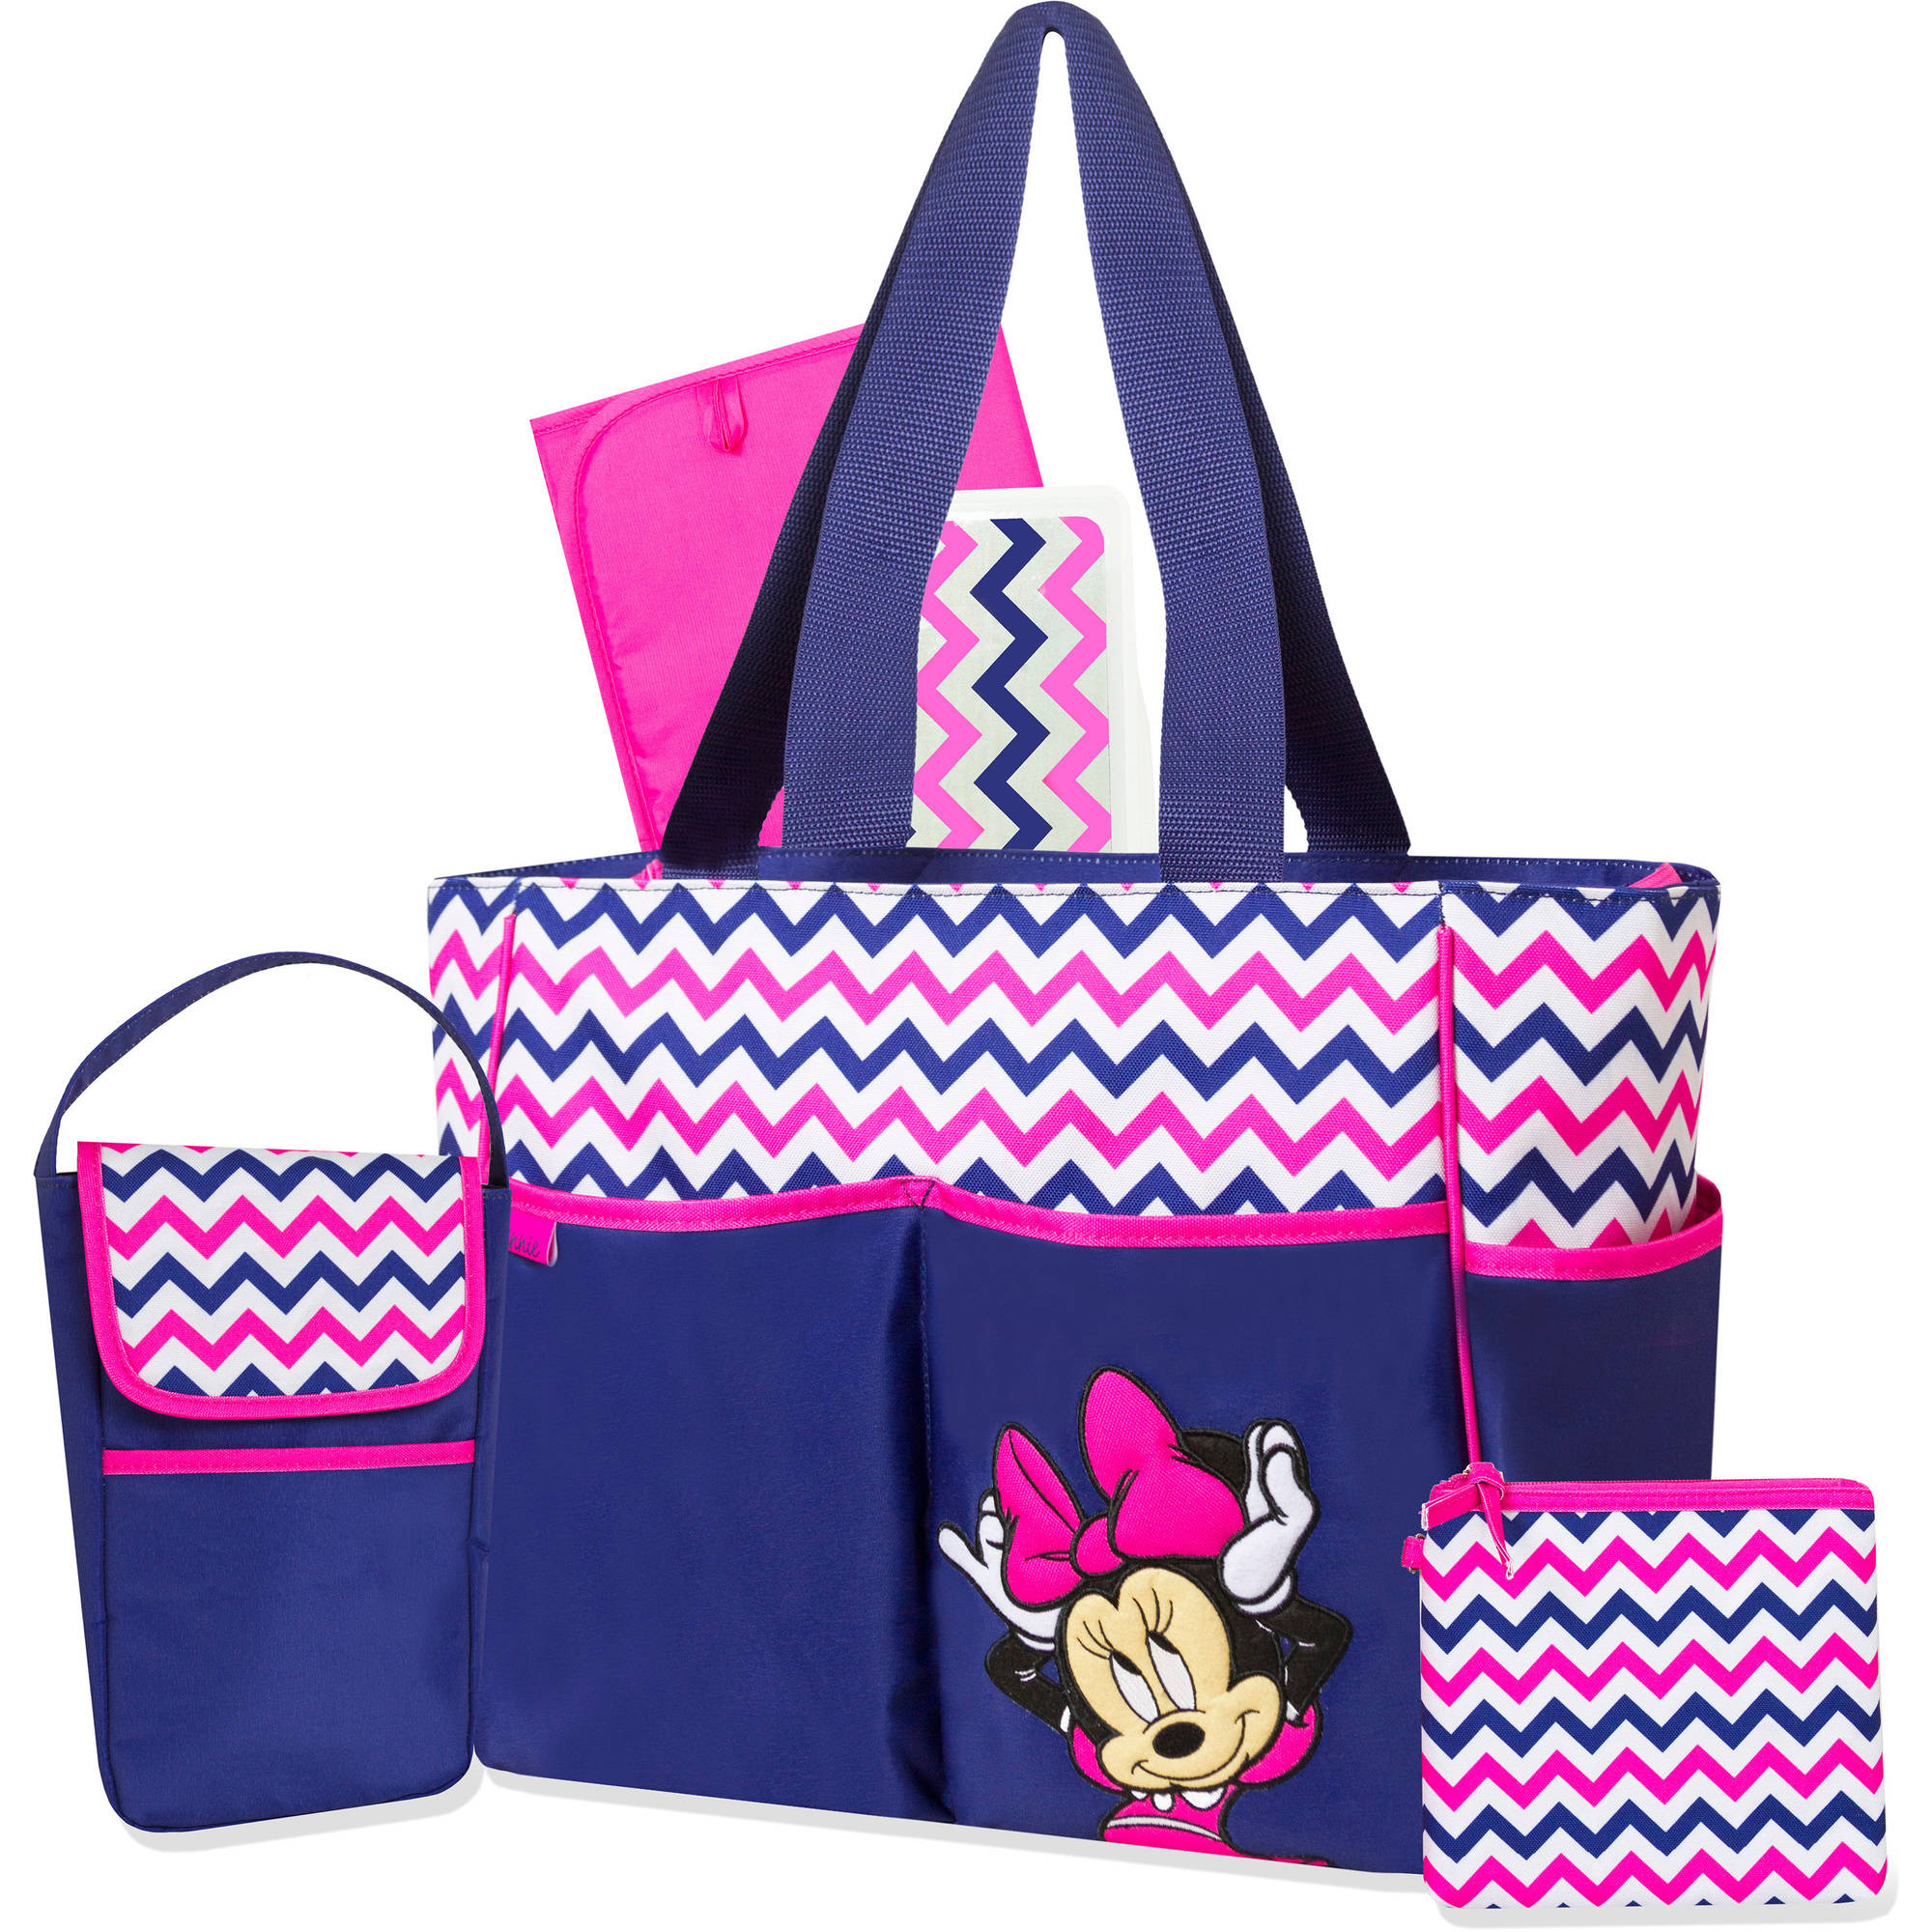 Disney Minnie Mouse Navy Chevron 5-in-1 Diaper Bag